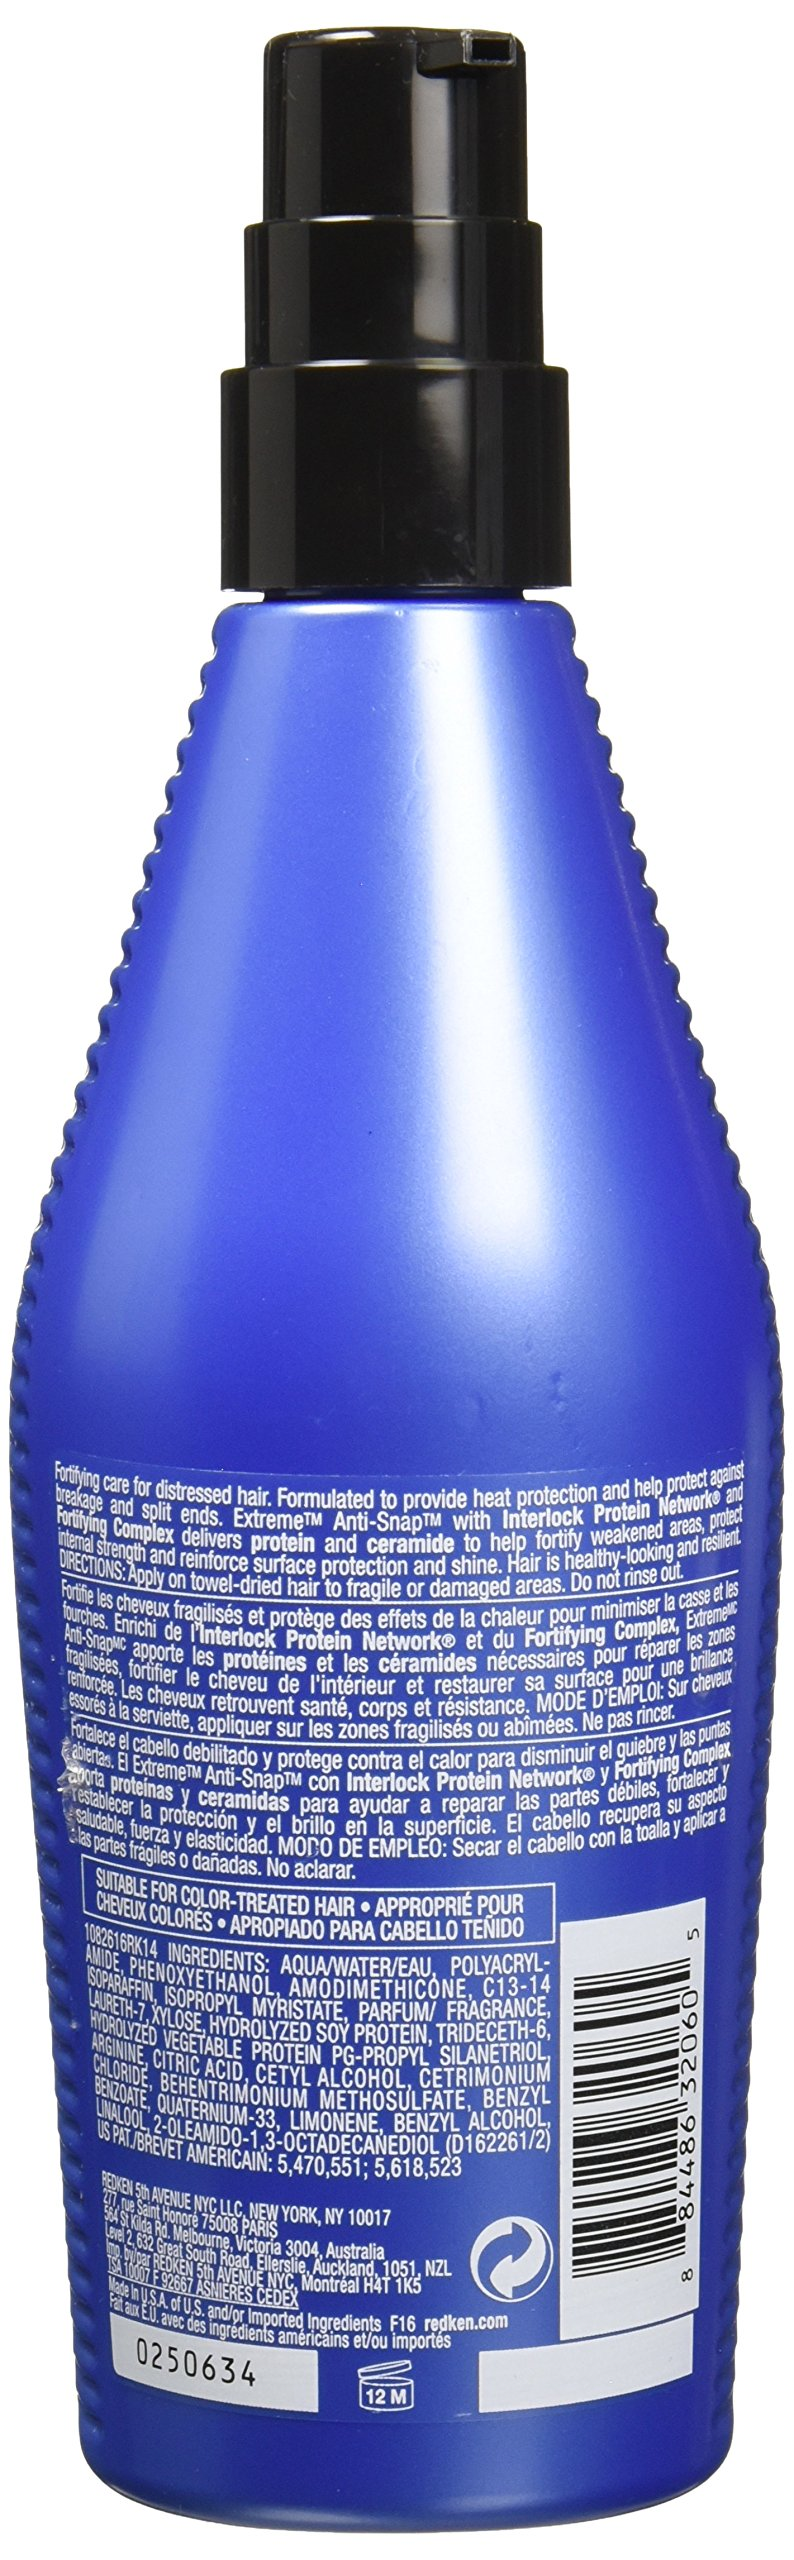 Redken Extreme Anti-Snap Leave In Treatment 240ml by REDKEN (Image #3)